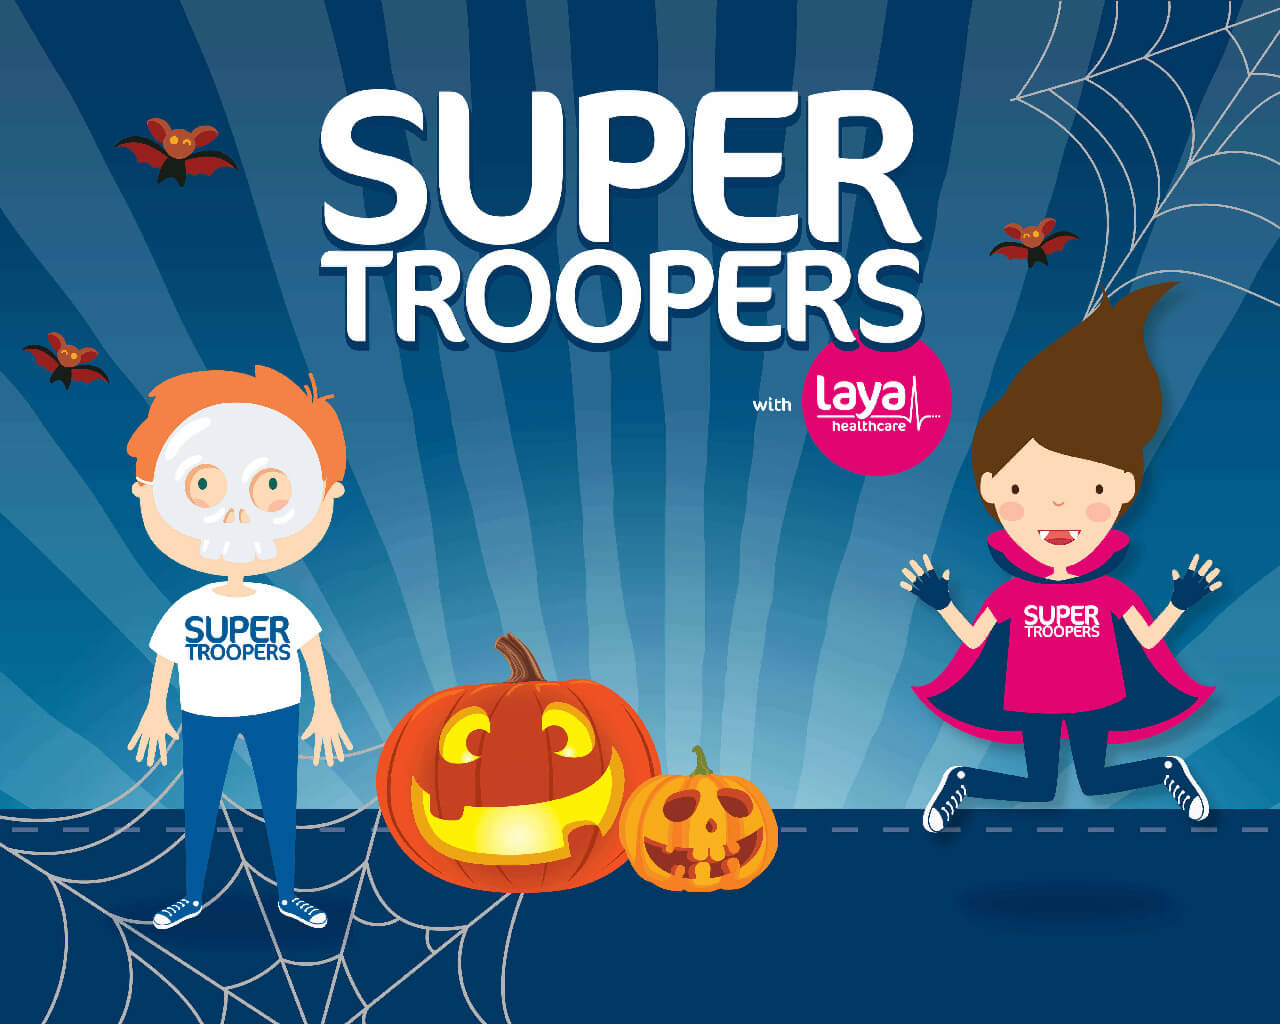 Super Troopers with laya healthcare | Halloween Healthy Treats